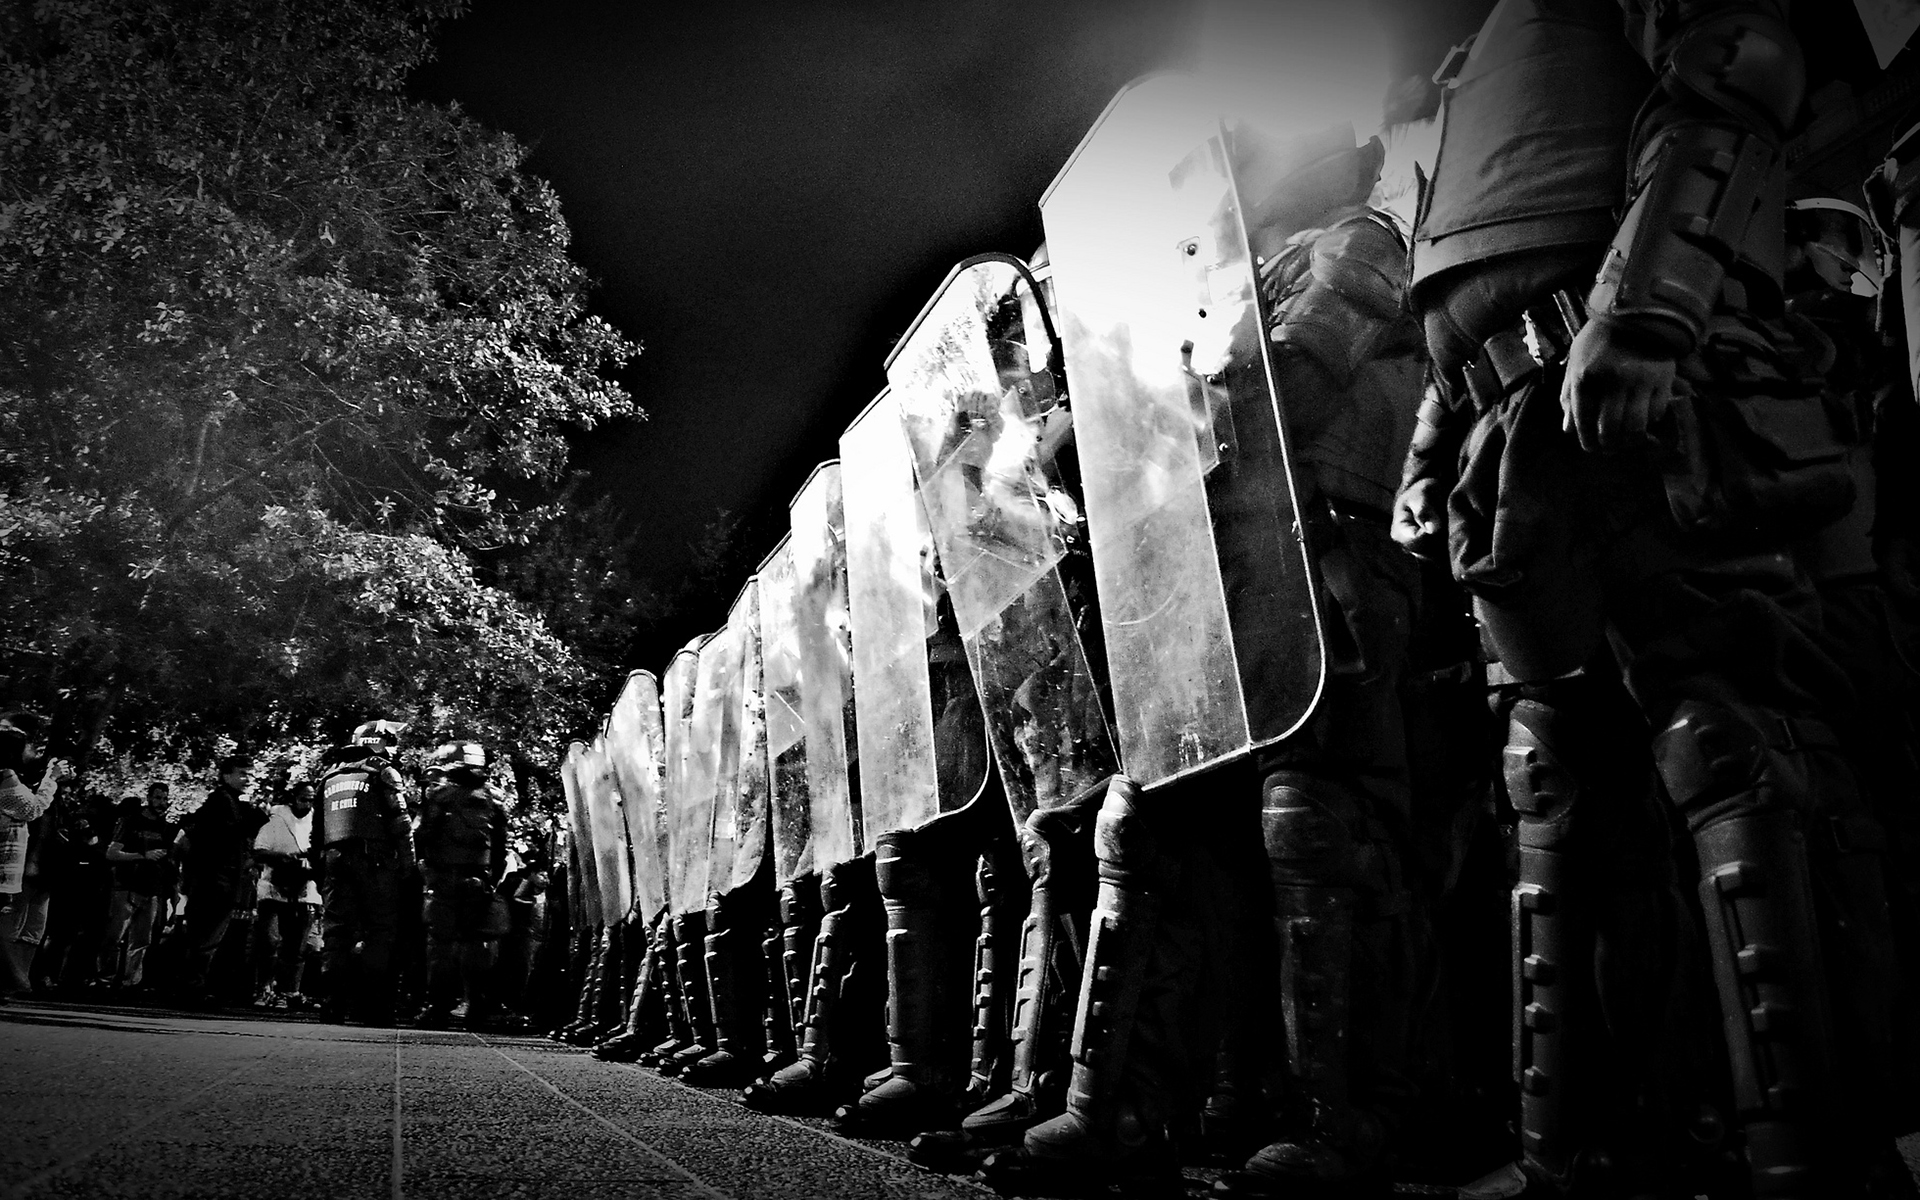 police swat black white bw people anarchy riot weapons wallpaper